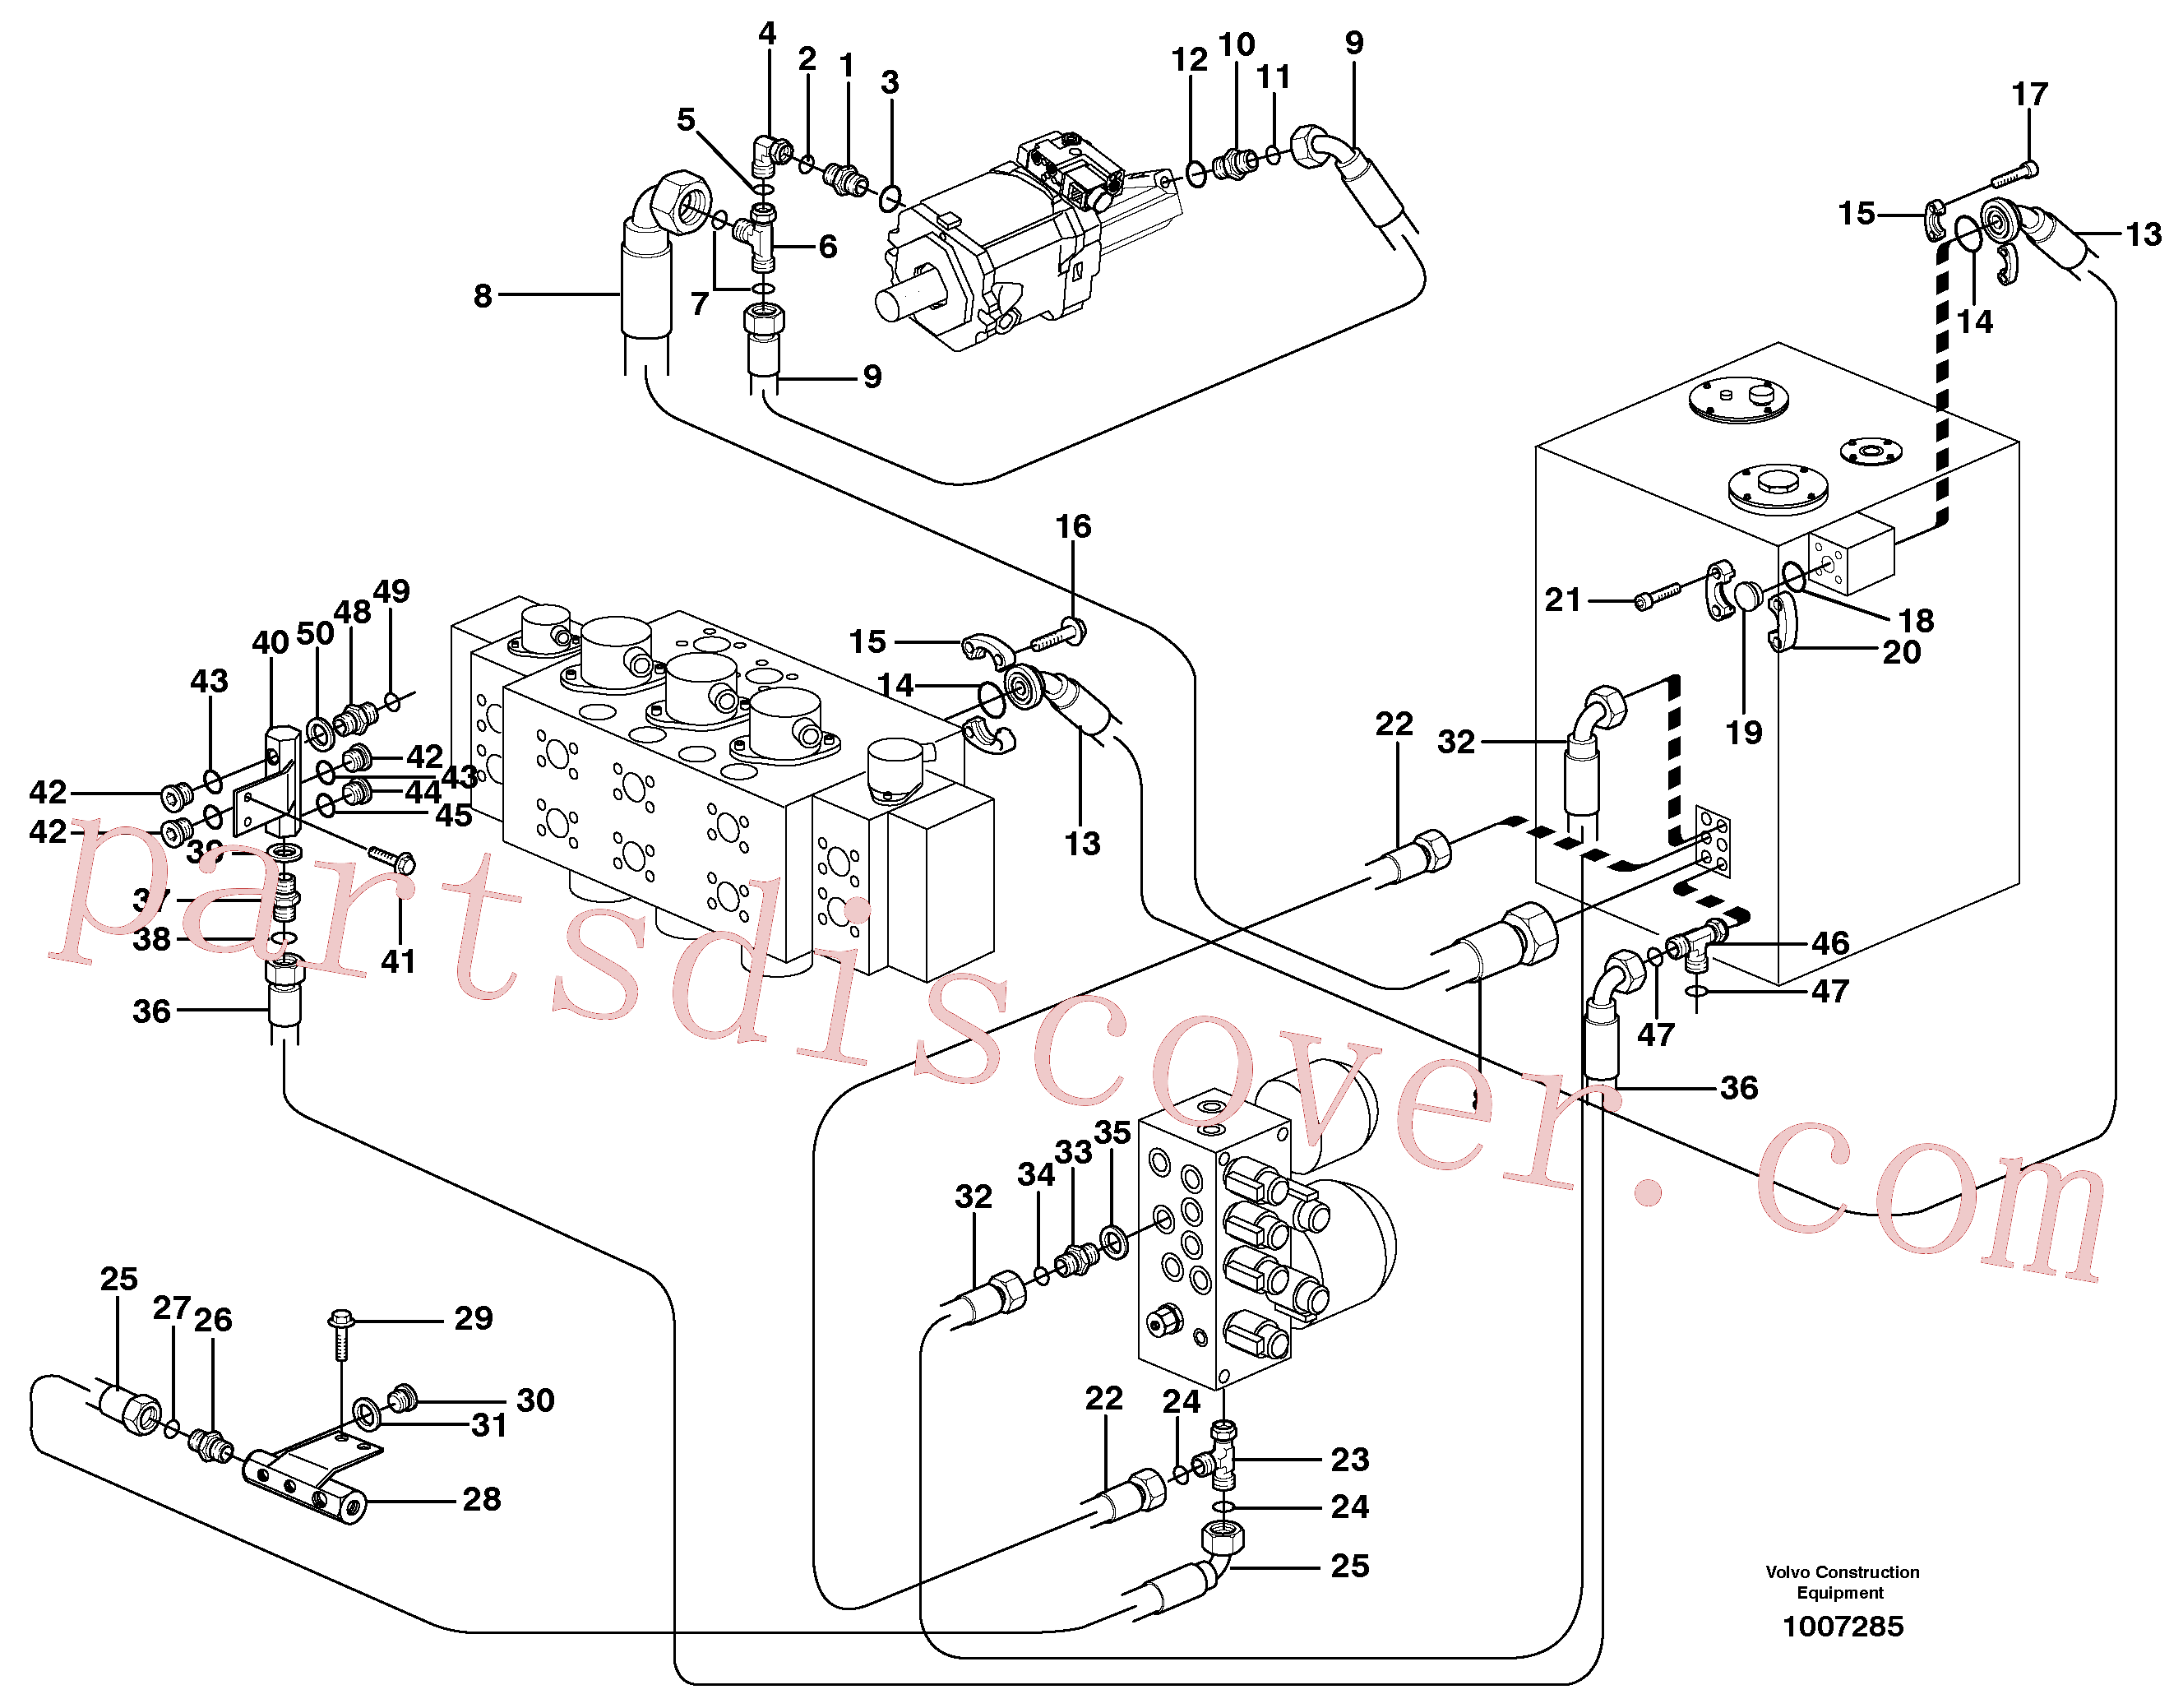 VOE14370290 for Volvo Hydraulic system, return lines(1007285 assembly)